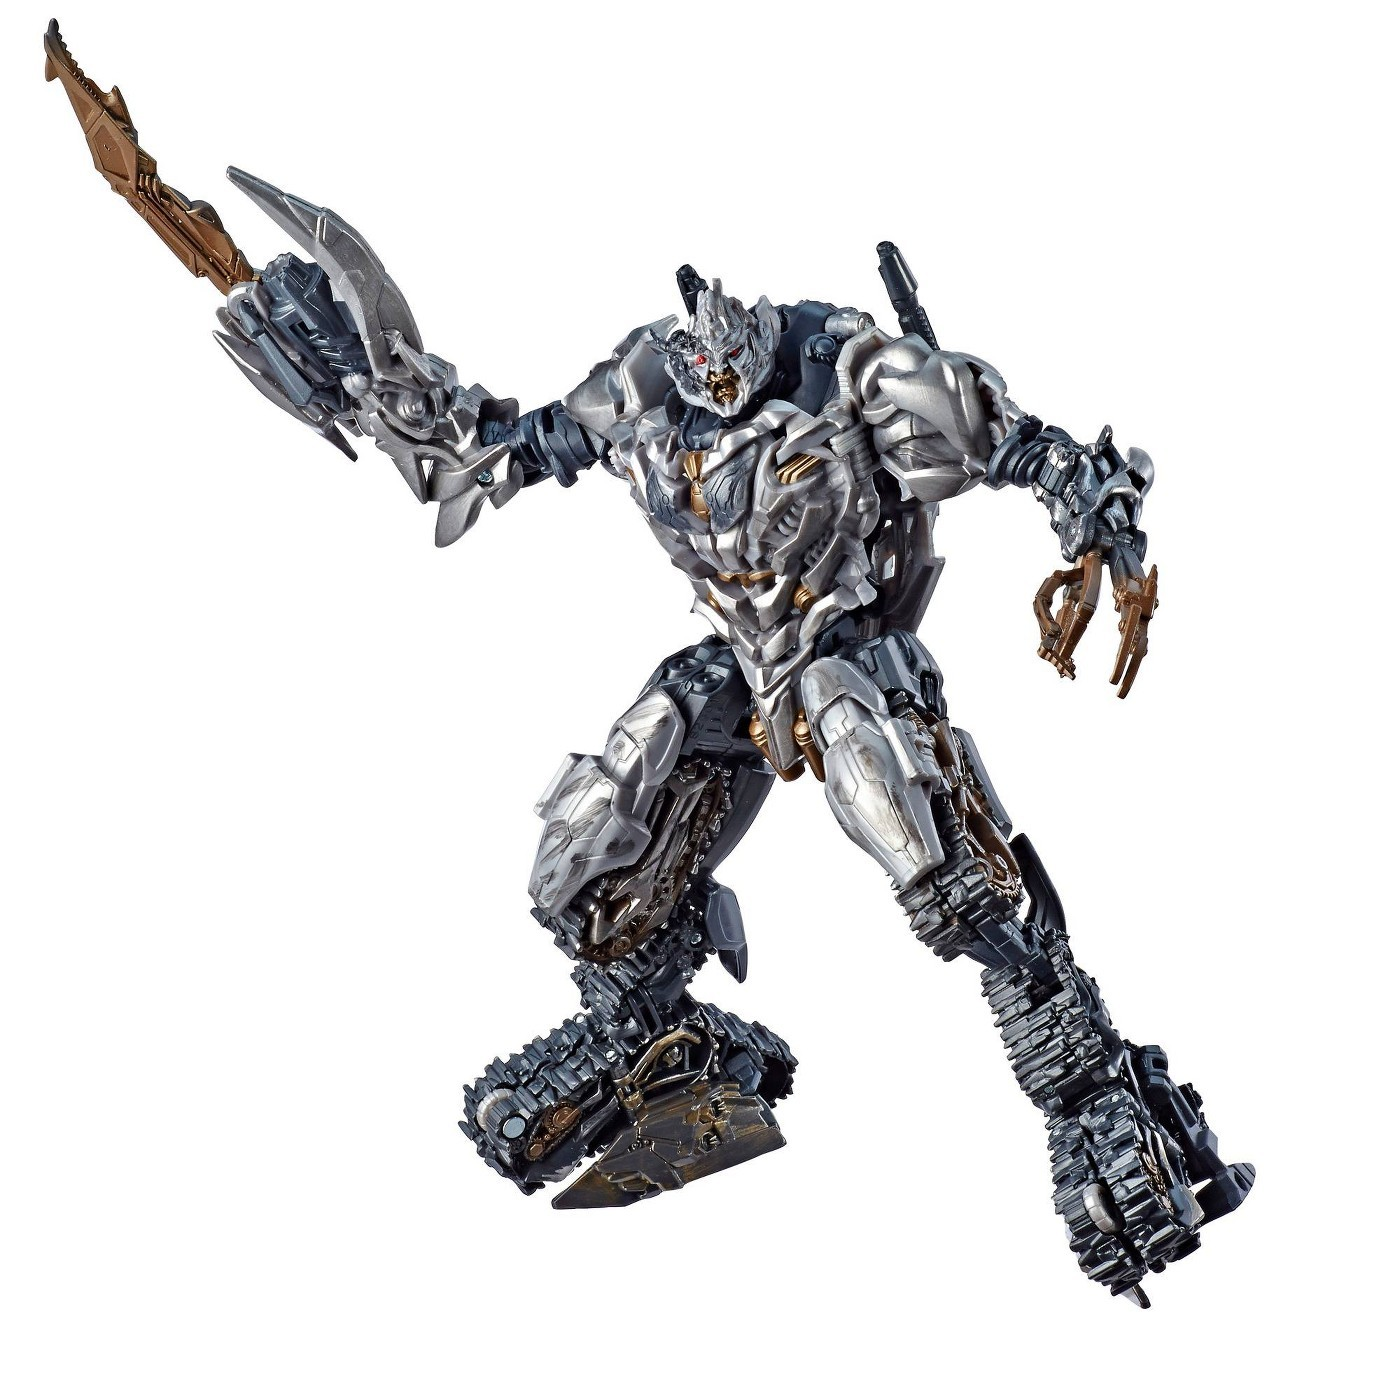 Transformers News: Transformers Studio Series SS-31 Voyager Class Battle Damaged Megatron Listed on Target.com